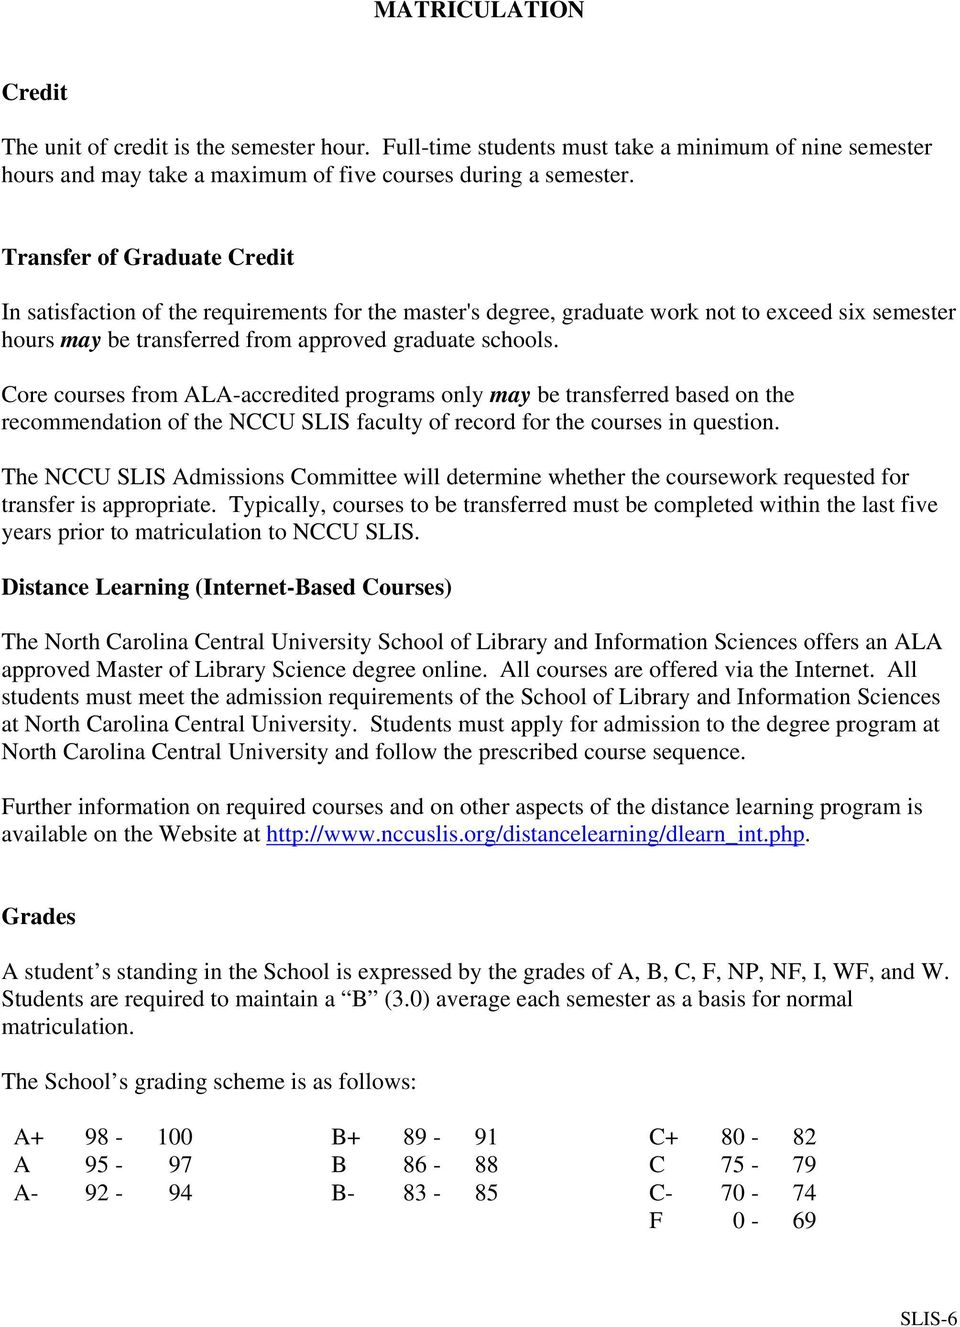 Core courses from ALA-accredited programs only may be transferred based on the recommendation of the NCCU SLIS faculty of record for the courses in question.